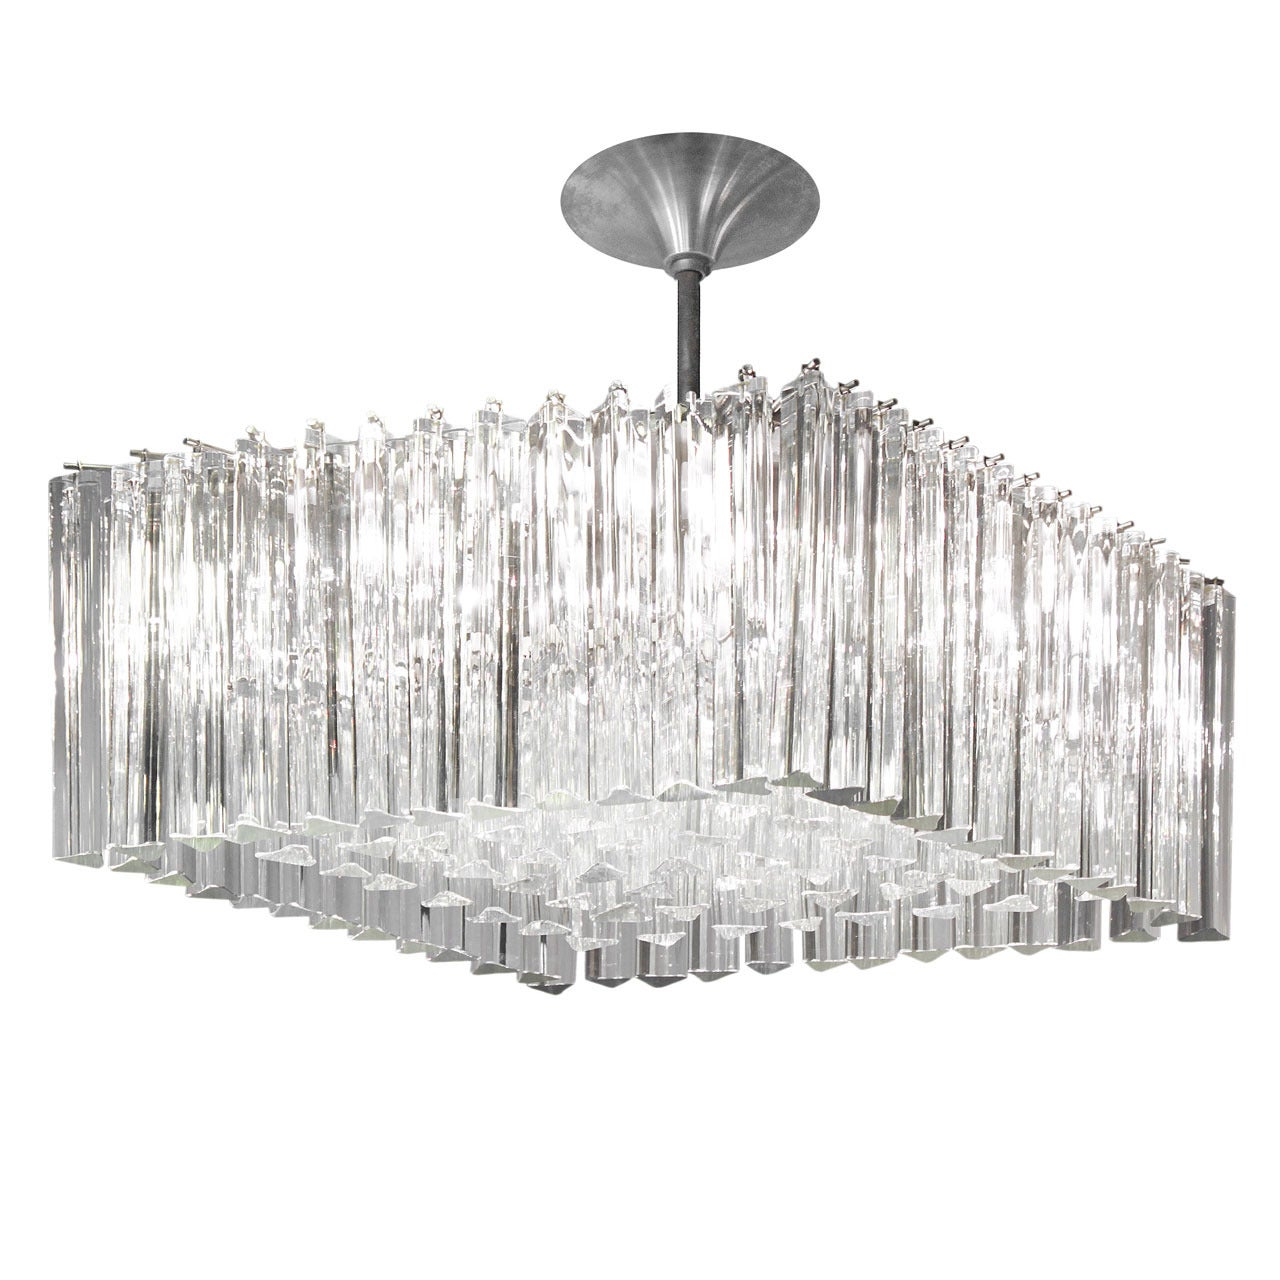 Chandelier with hanging glass rods by venini at 1stdibs aloadofball Image collections